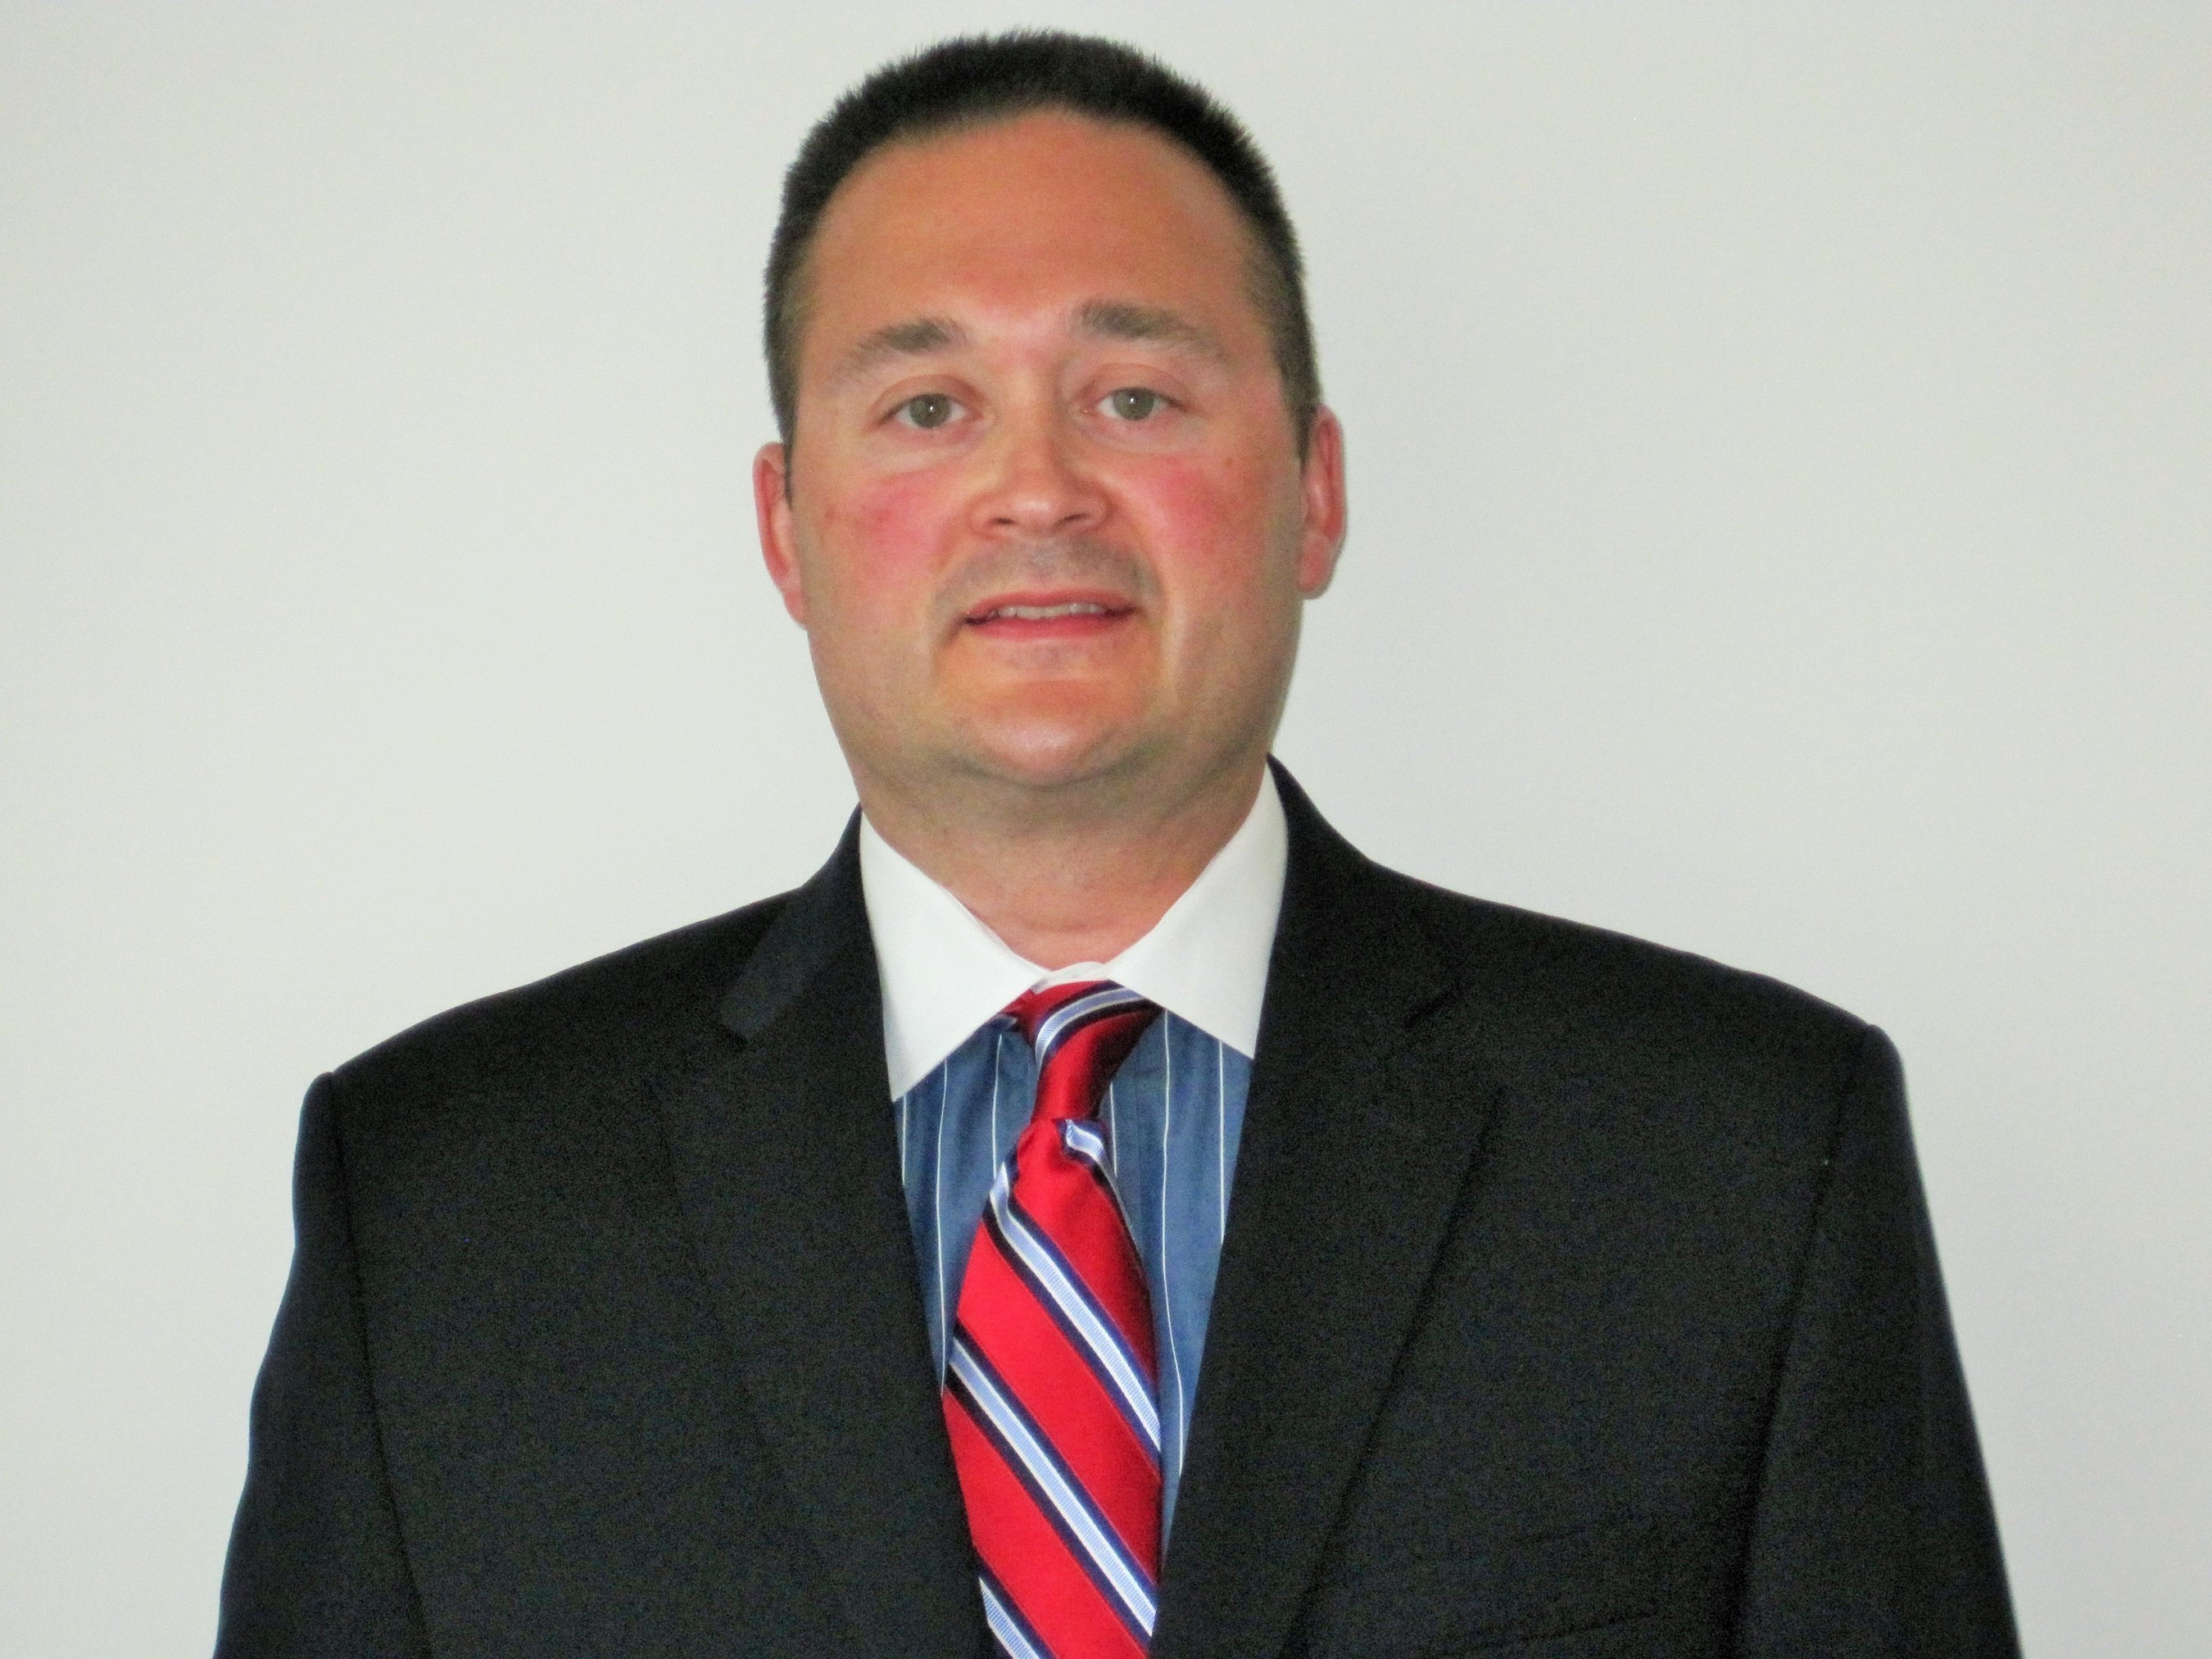 Veteran Wall Street executive Paul Cassell, president of PC IT Consulting Inc. and former U.S. chief information officer for NYSE Euronext and the New York Stock Exchange, has been named CIO for Pico globally, and will lead the firm's consulting division.